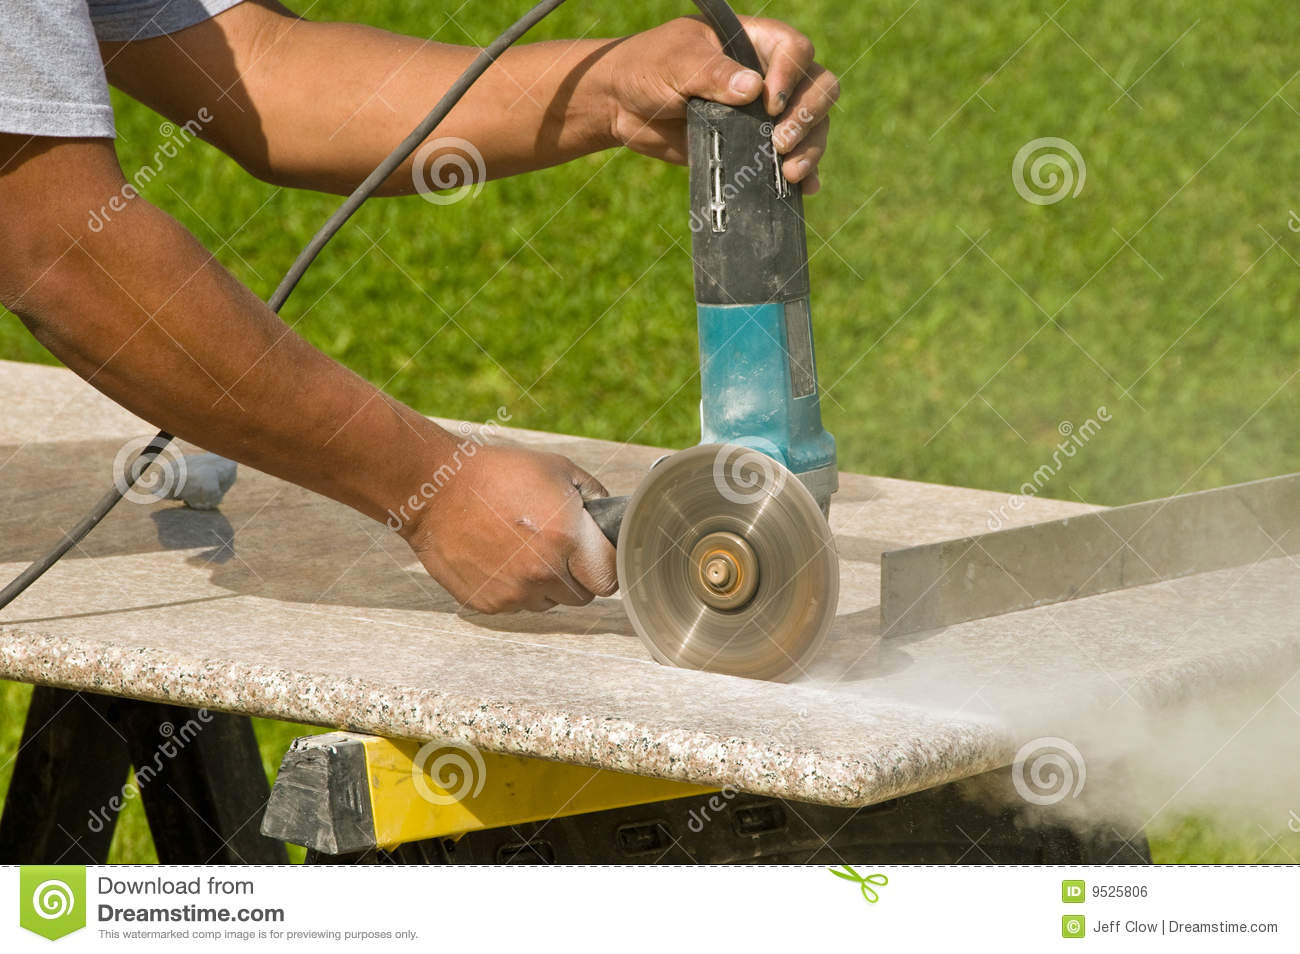 Saw To Cut Granite Countertop Cutting Granite Countertops Royalty Free Stock Image